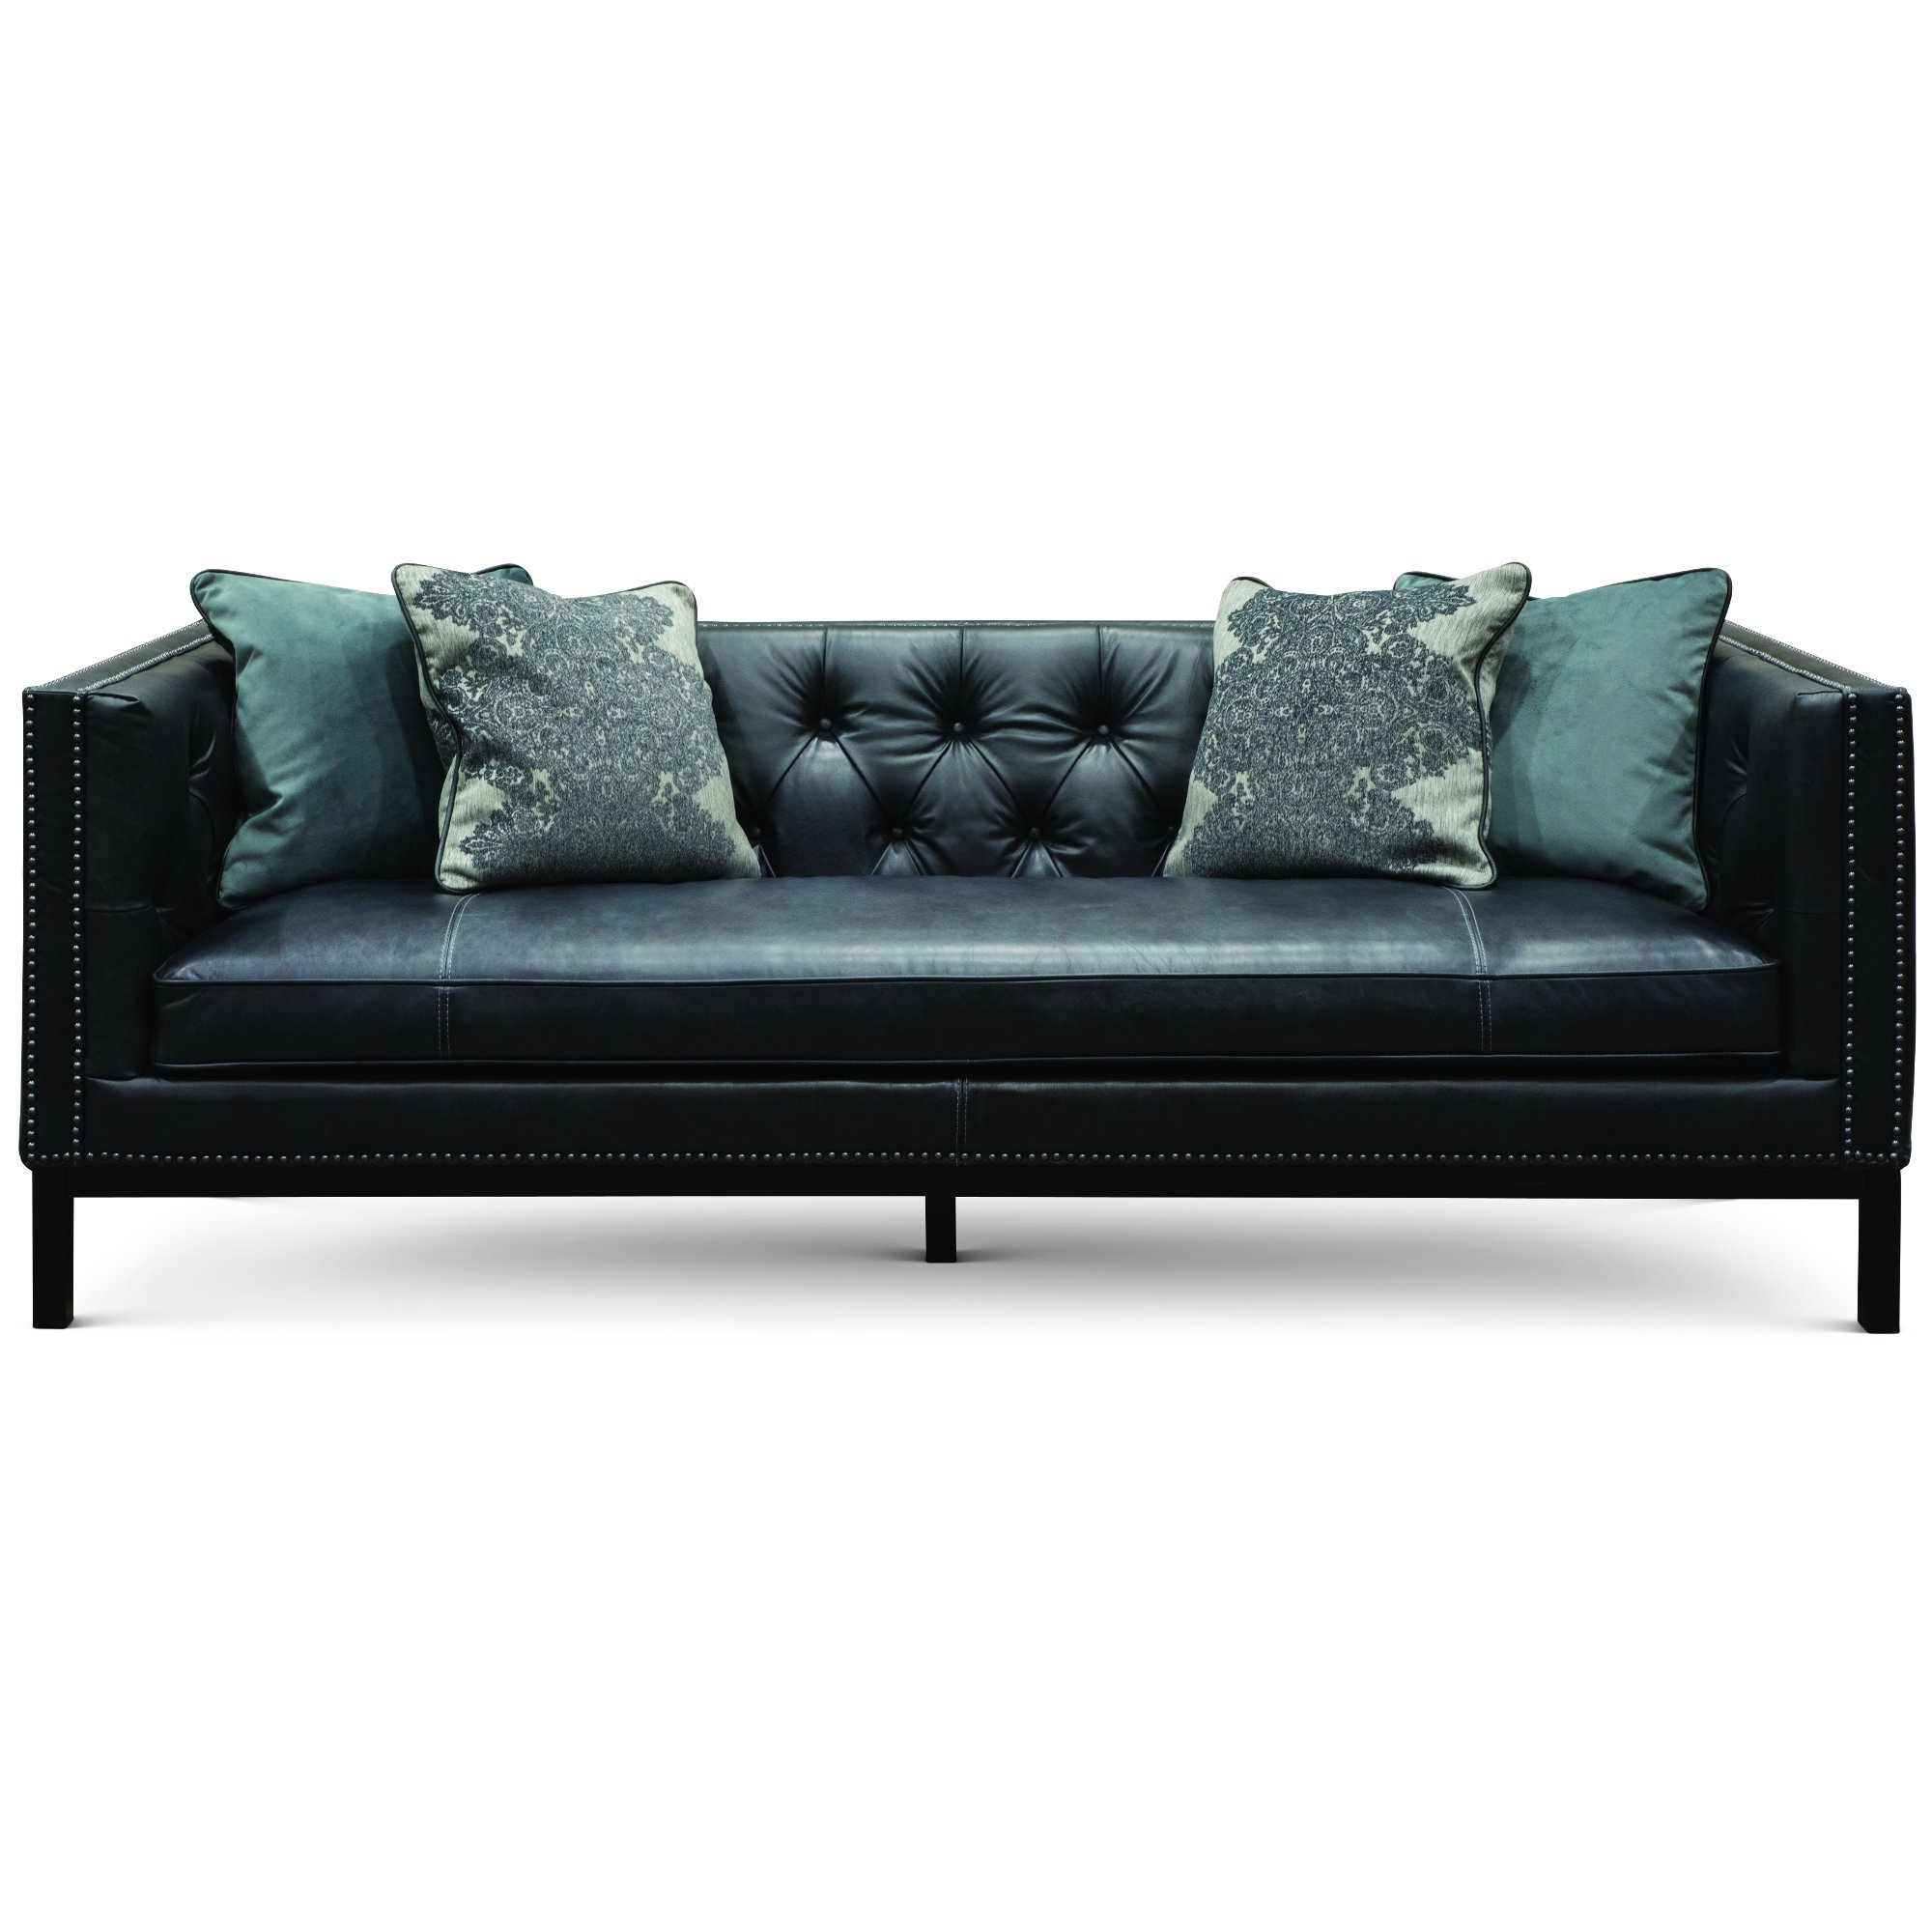 Mid Century Modern Slate Black Leather Sofa   St. James | RC Willey  Furniture Store